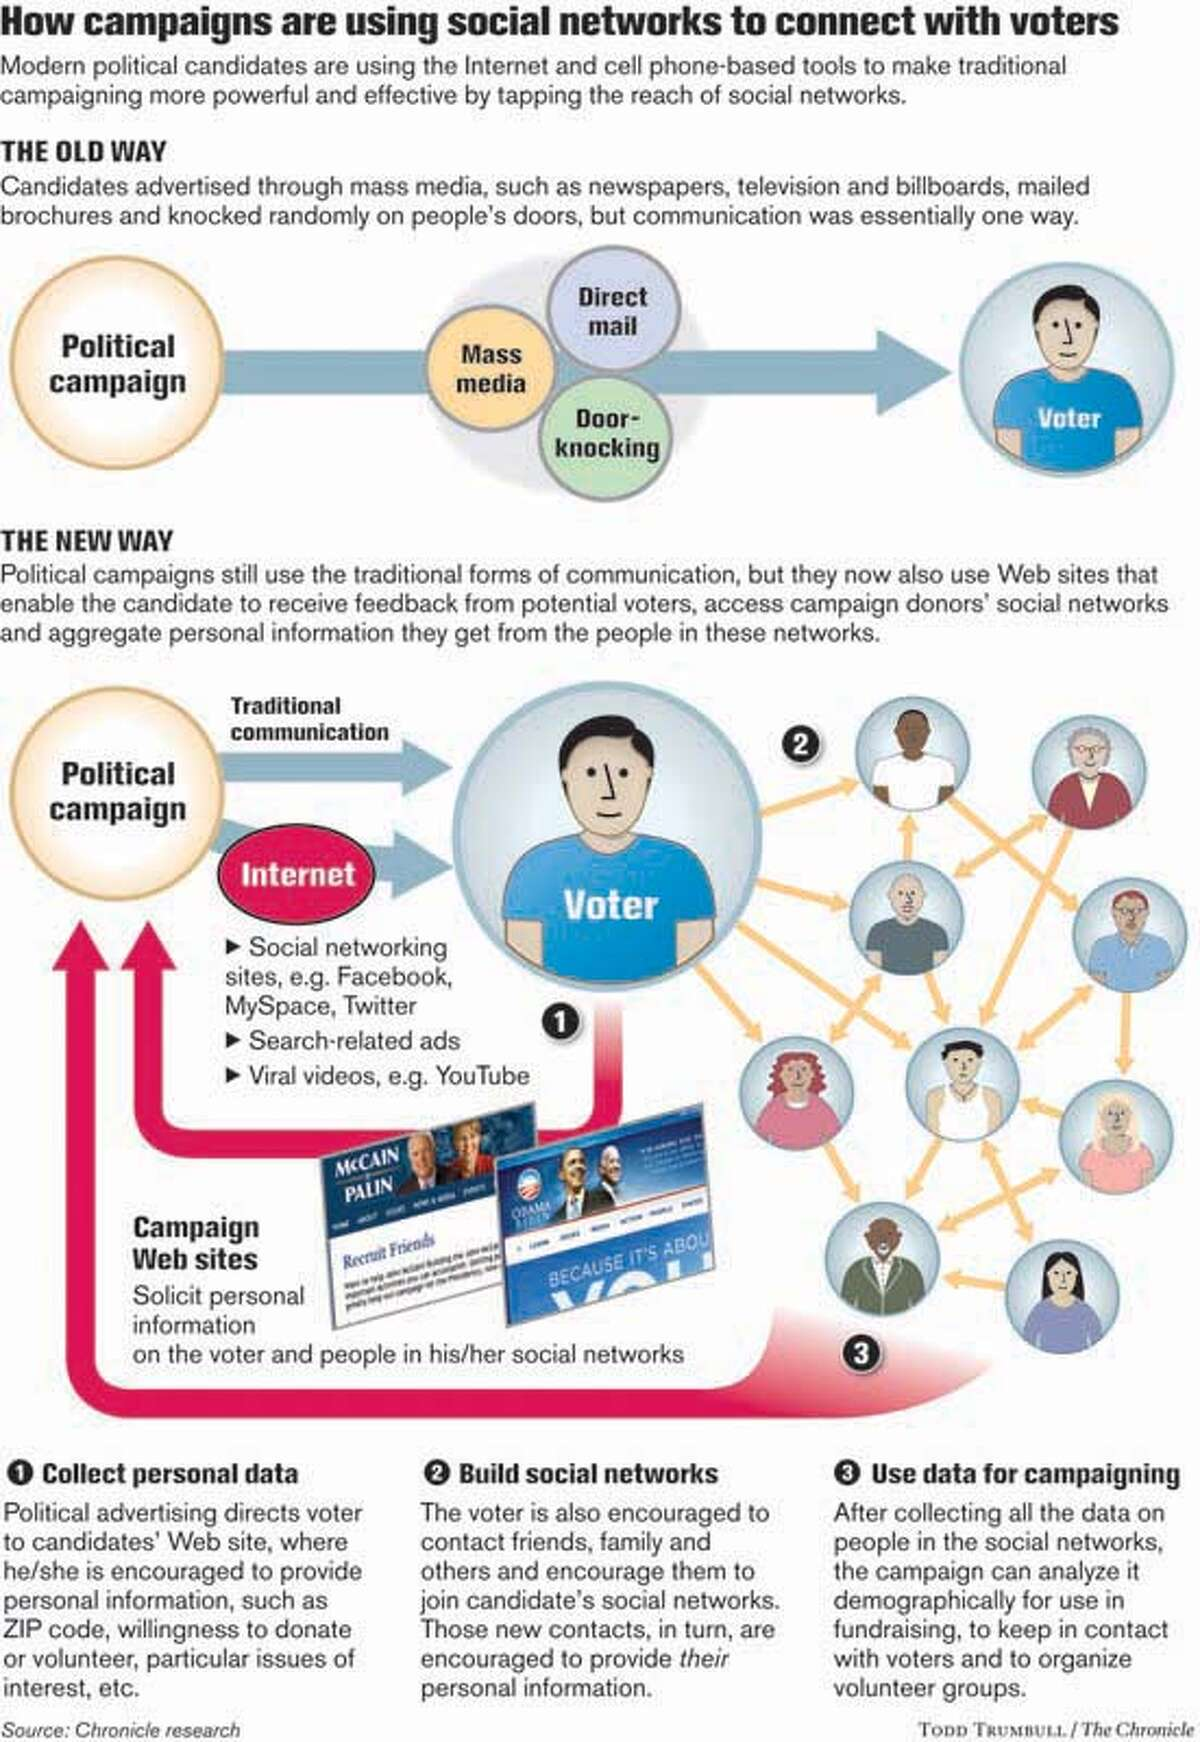 Campaigns are using Social Networks